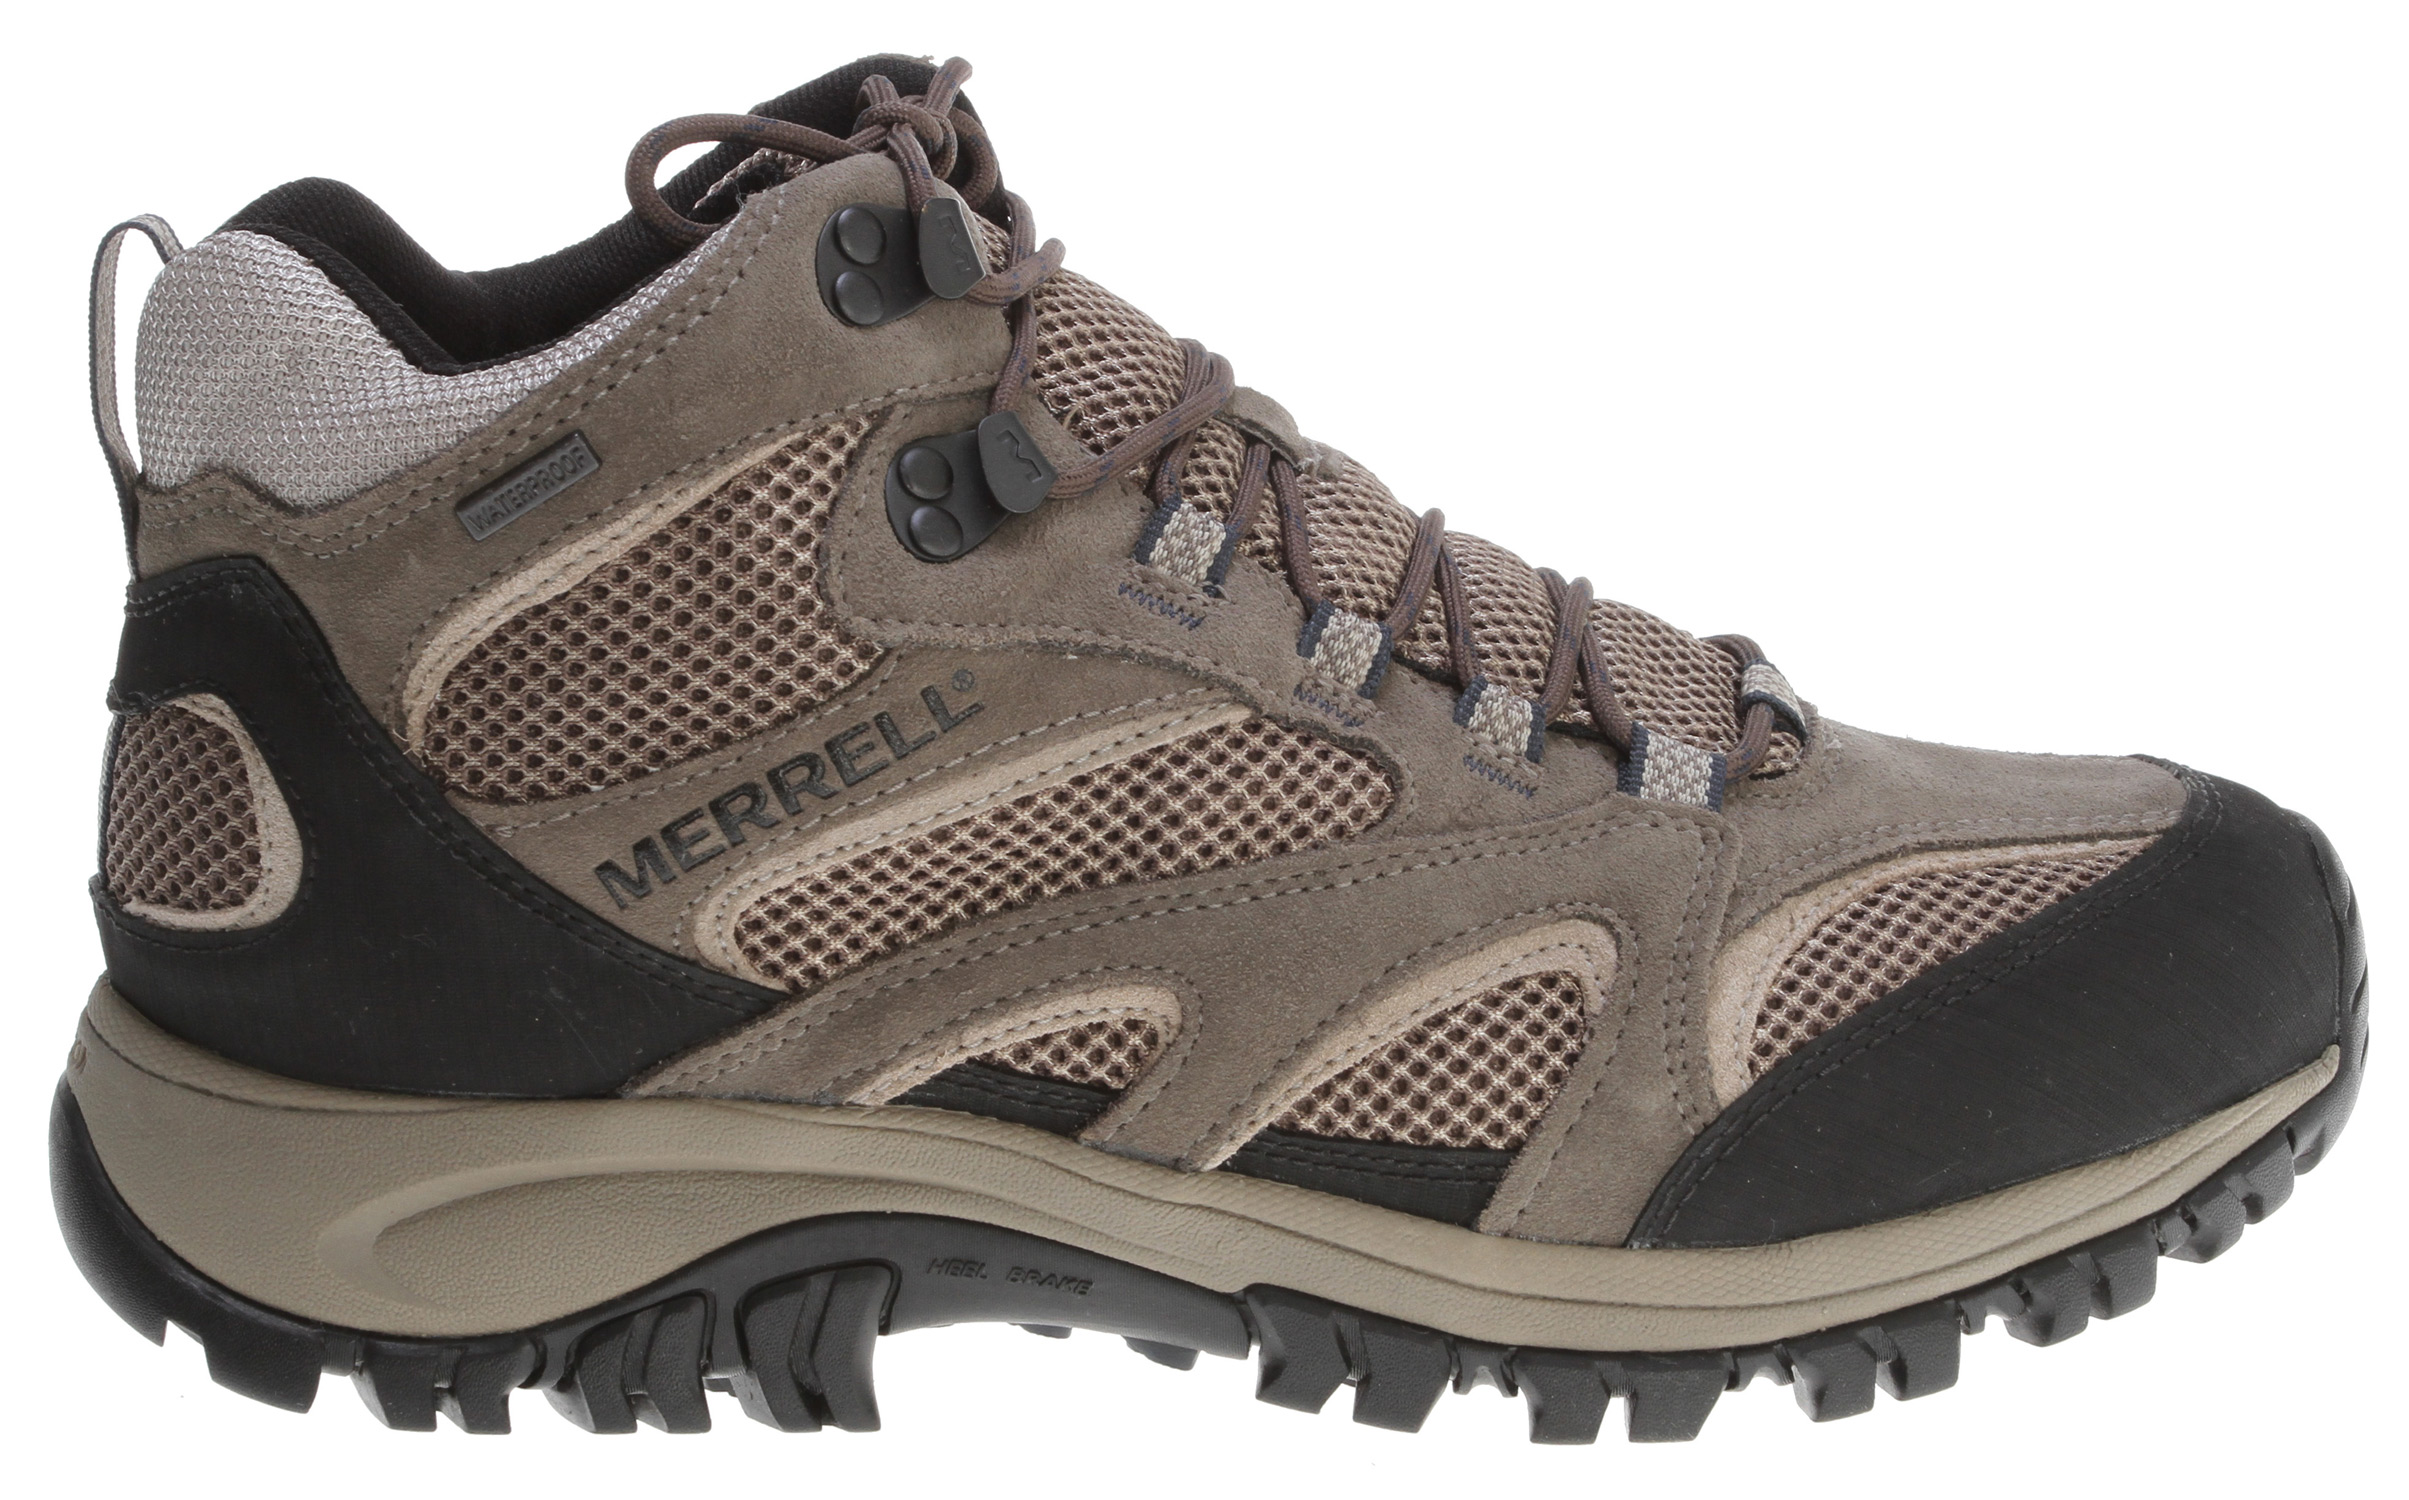 Camp and Hike Enjoy fleet feet for your explorations with these low profile multisport shoes: plenty of support and cushioning - without the weight. With a flexible sole and supportive arch shank, this waterproof mid will keep your feet dry and comfortable. Lightweight cow suede/mesh upper with bellows tongue keeps out debris.Key Features of the Merrell Phoenix Mid Waterproof Hiking Shoes: Strobel construction offers flexibility and comfort Cow suede and mesh upper Mid cut upper Bellows tongue keeps debris out Abrasion resistant toe cap and heel Waterproof membrane treated with Aegis® antimicrobial solution provides a impermeable yet breathable barrier. Mesh lining treated with Aegis® antimicrobial solution Molded nylon arch shank Merrell air cushion in the heel absorbs shock and adds stability with an EVA midsole for cushioning Merrell Kamet Sole/ Sticky Rubber Men's Weight: 2lbs 2 ozs - $69.95